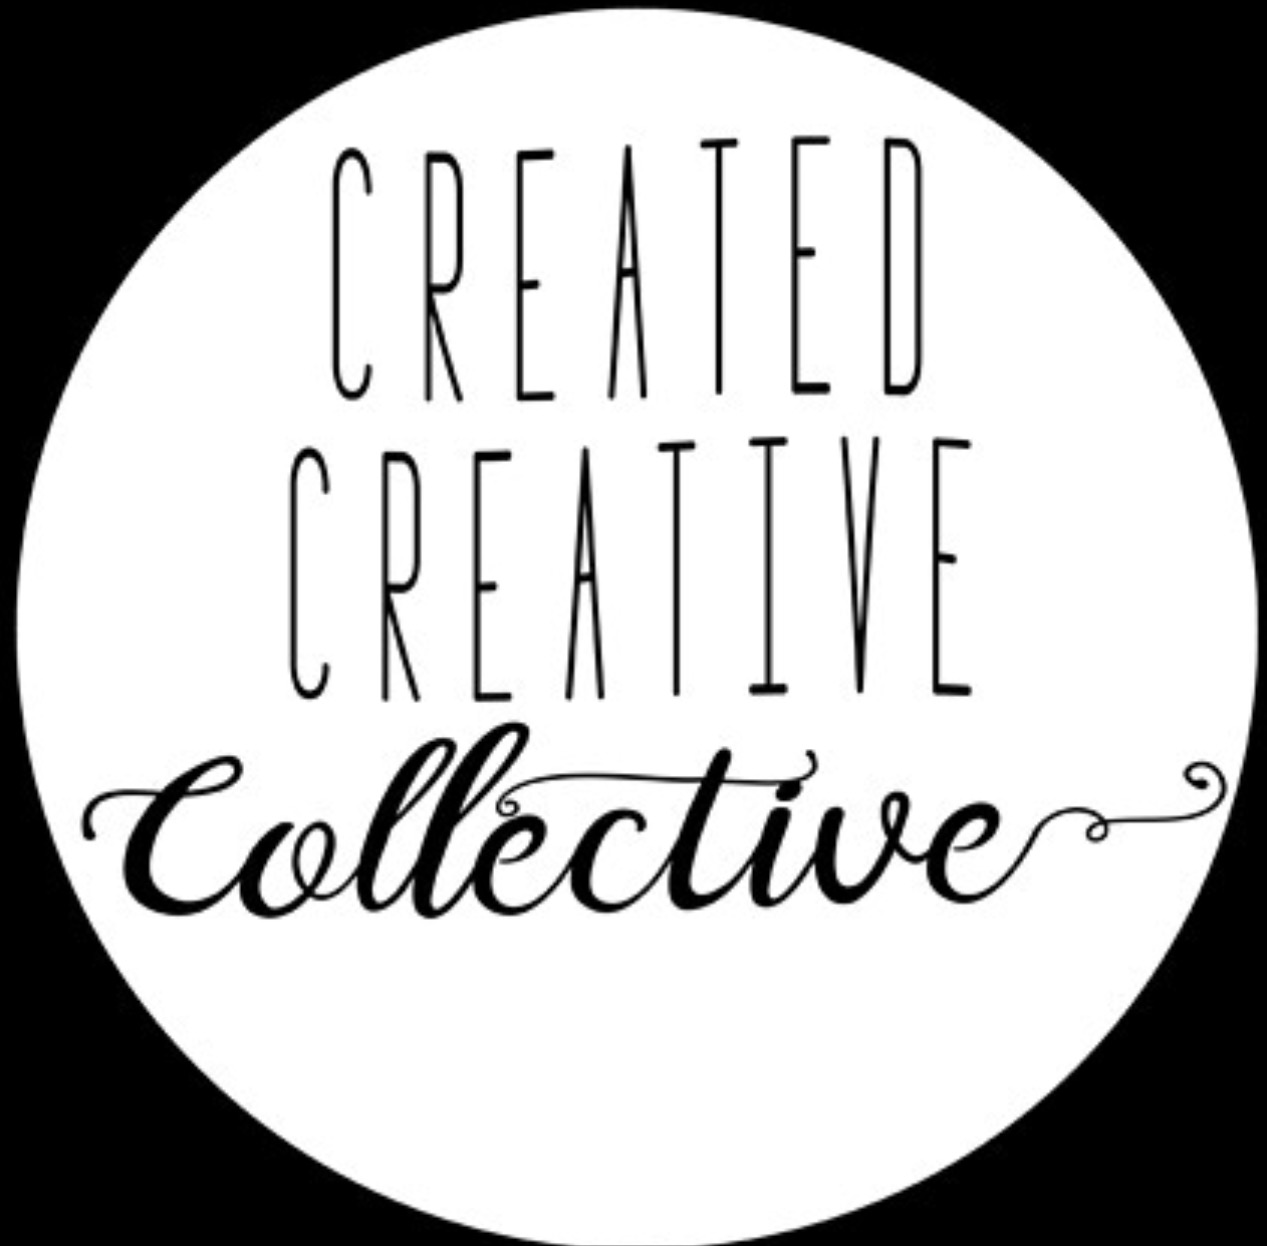 Created Creative Collective - The Collective for Creatives Created to be Creative